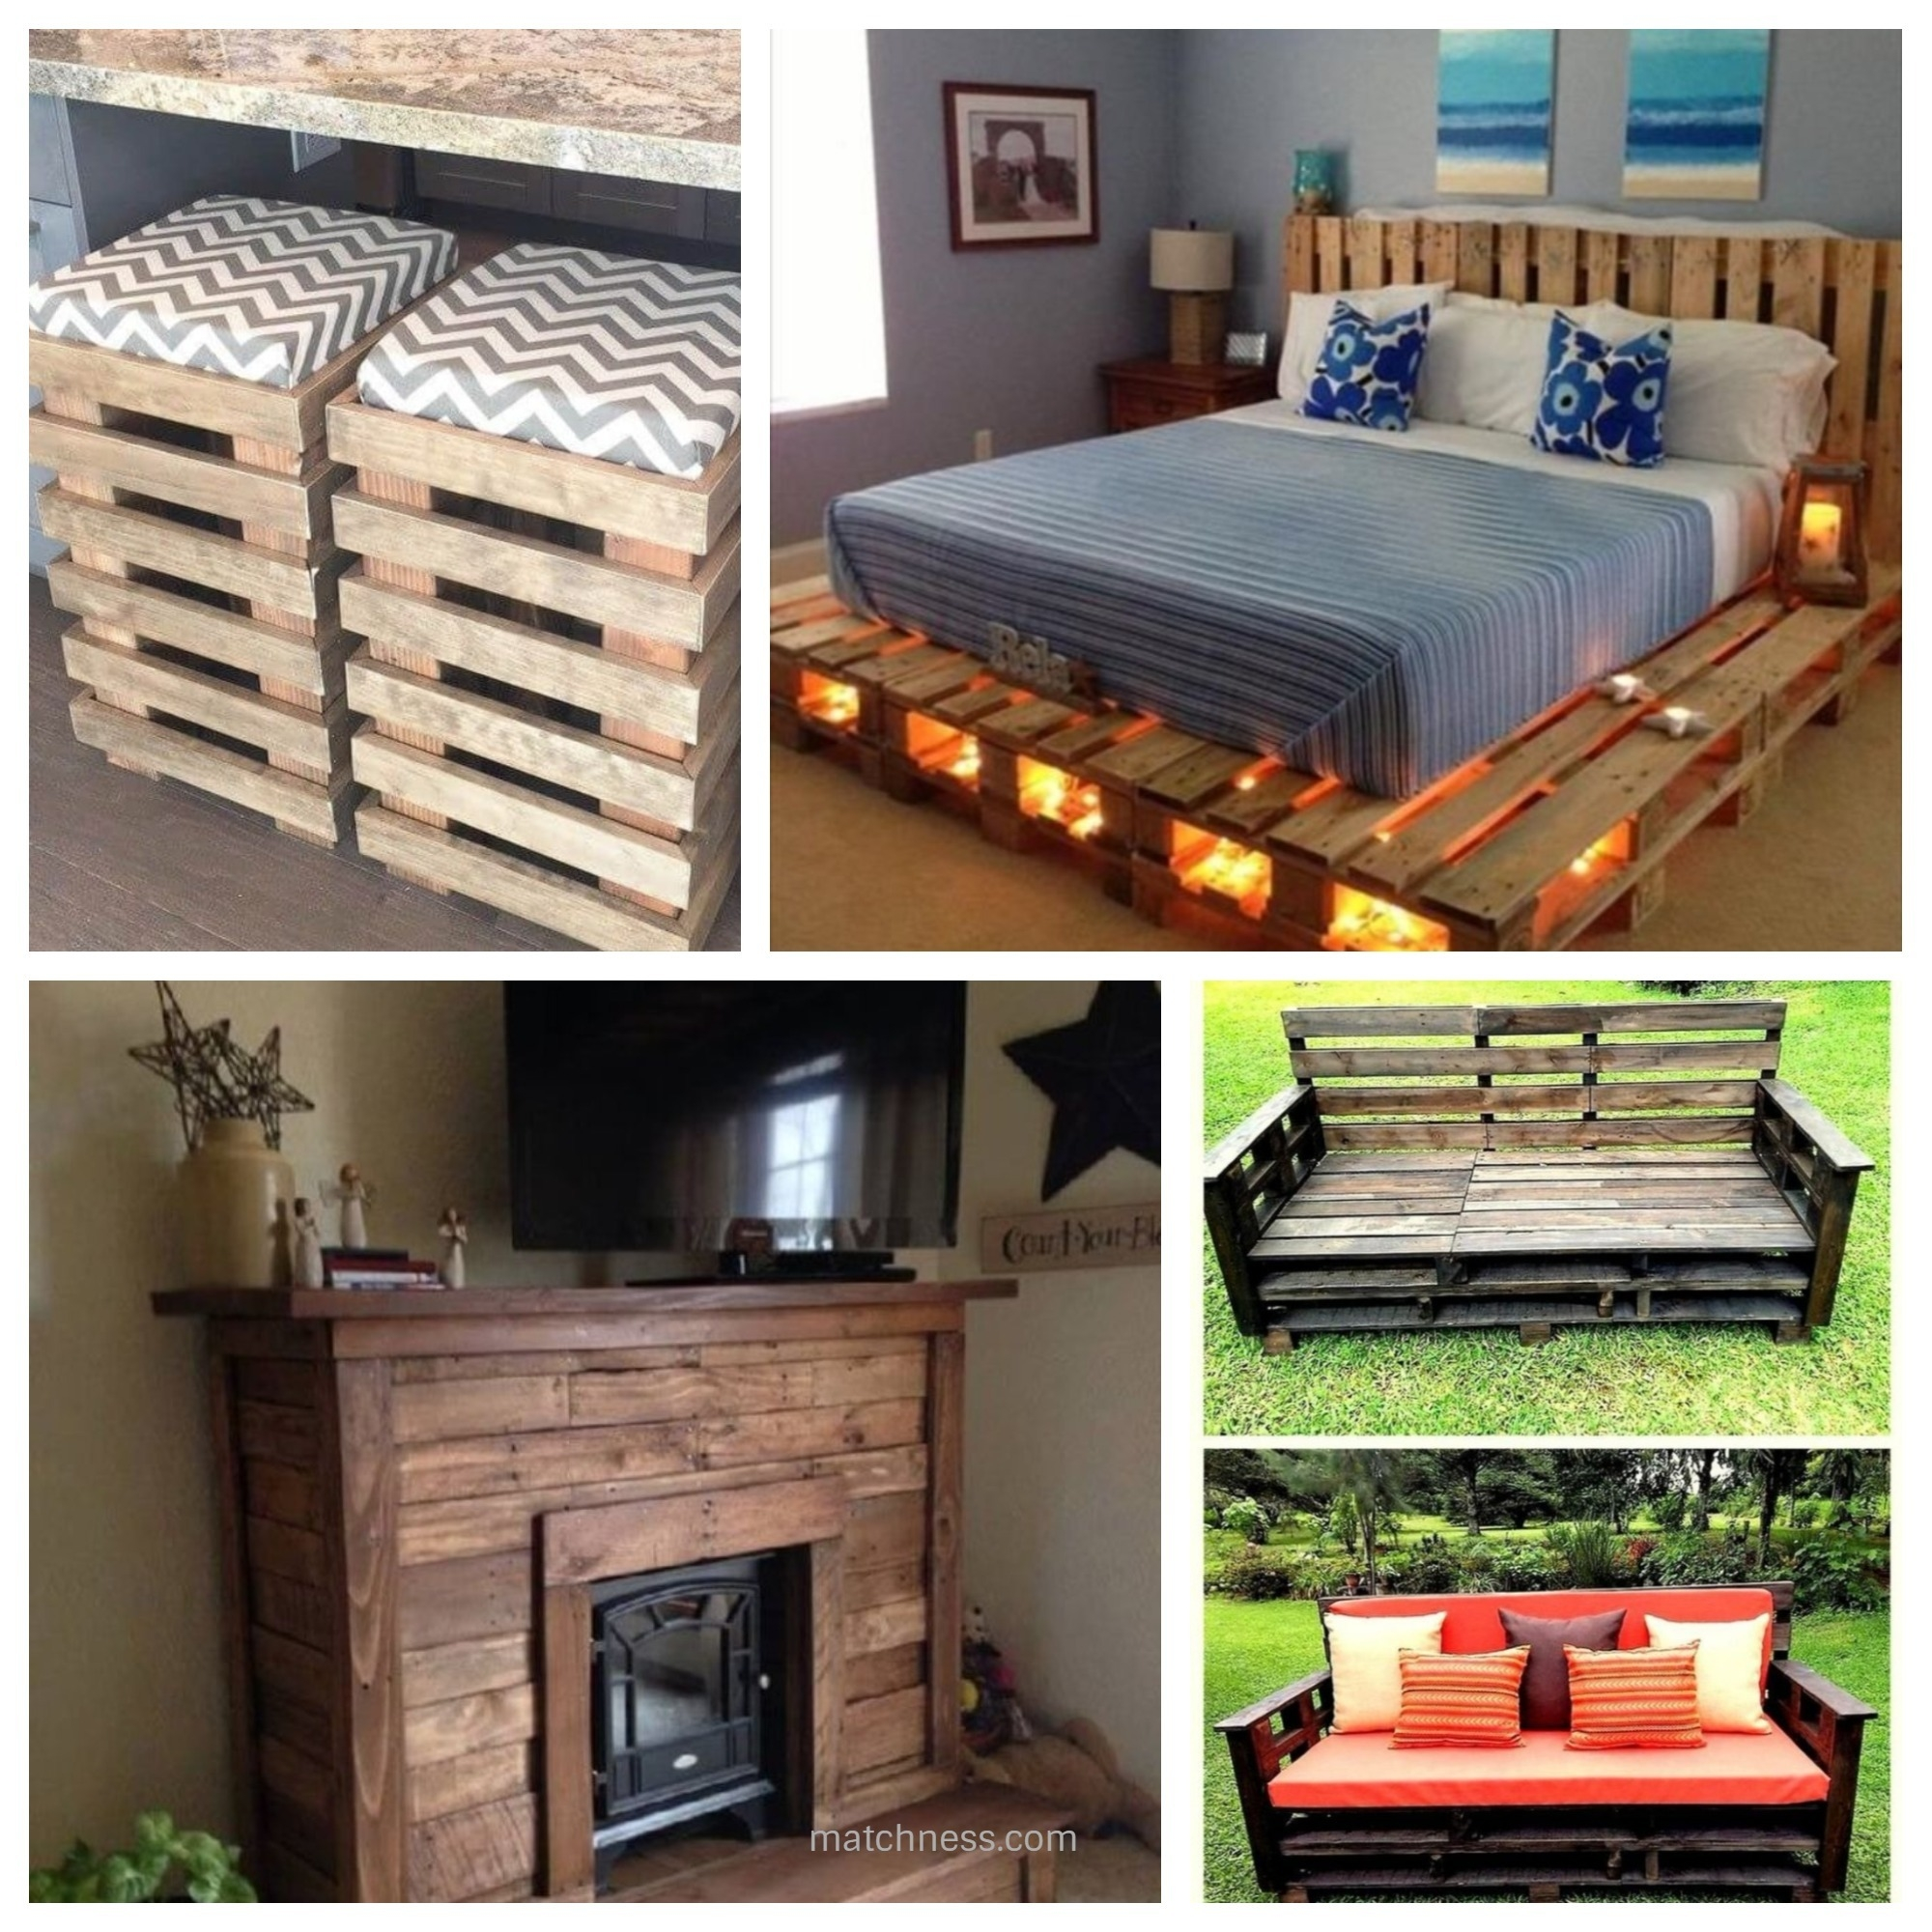 Attirant 39 Furniture Pallet Projects You Can Diy For Your Home